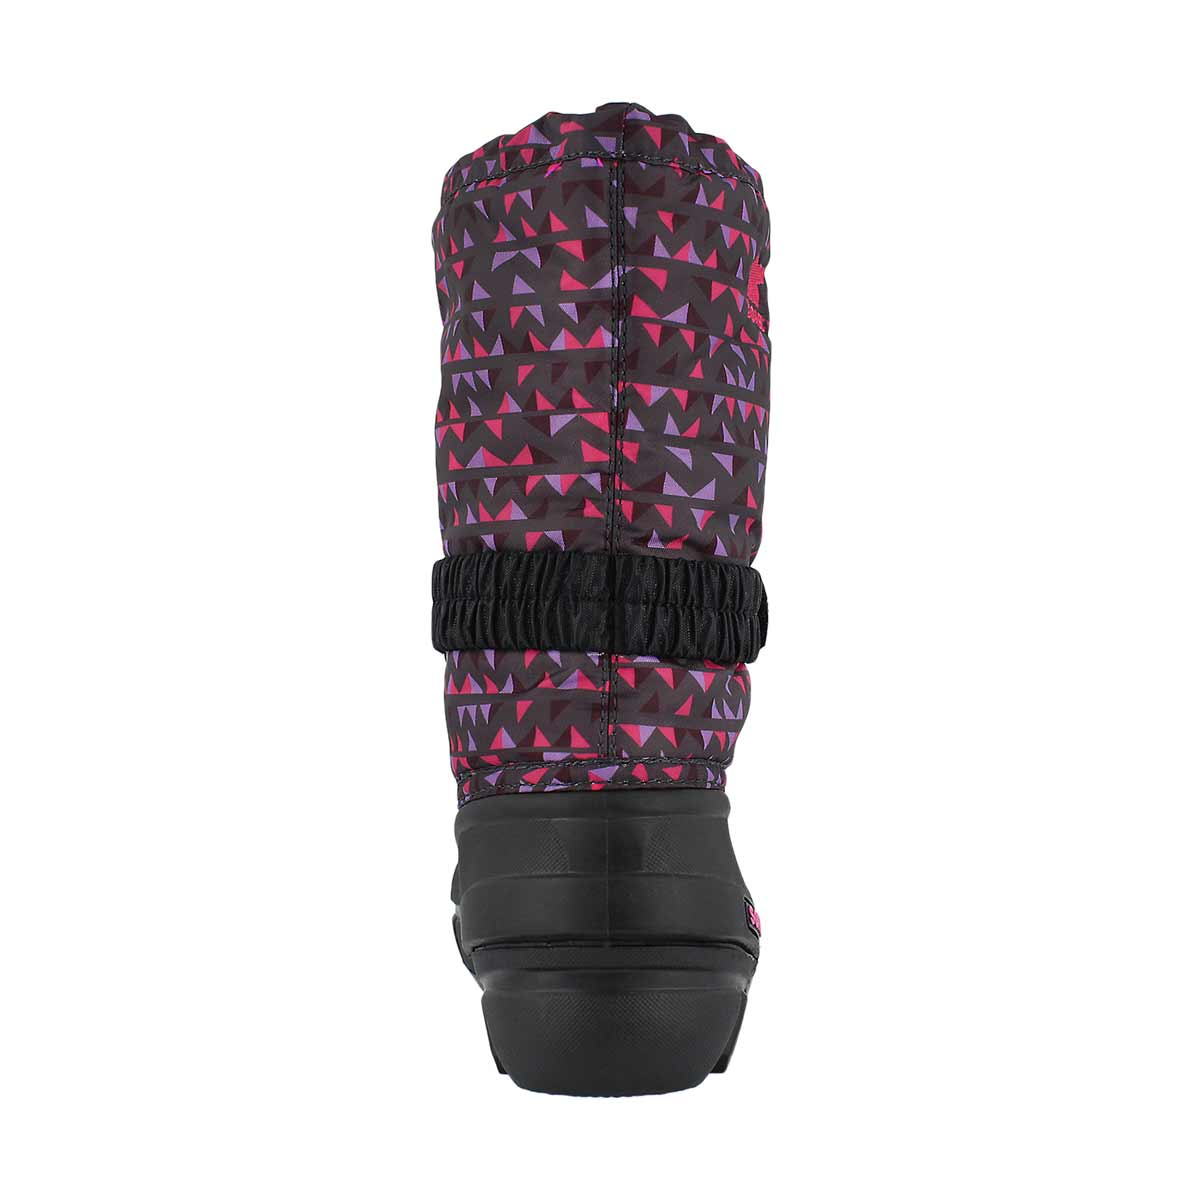 Grls Flurry Print gry/pnk winter boot